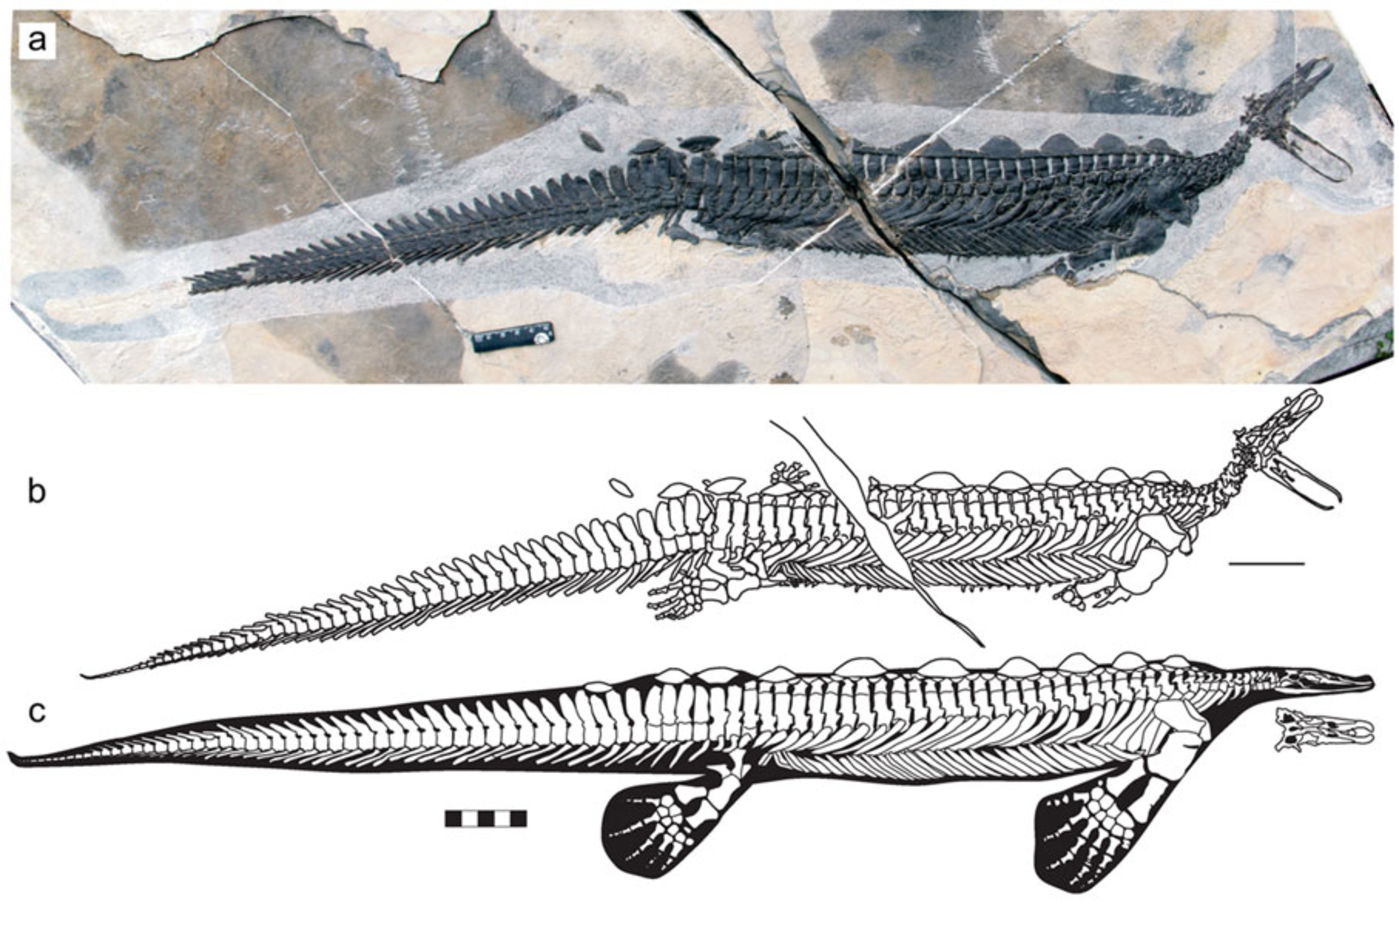 A dark gray crocodile-like skeleton in lighter gray and cream-colored rock. It has a tail and a large bill that's open. Below the photograph, an illustration of the skeleton shows what the animal's body shape might've looked like.